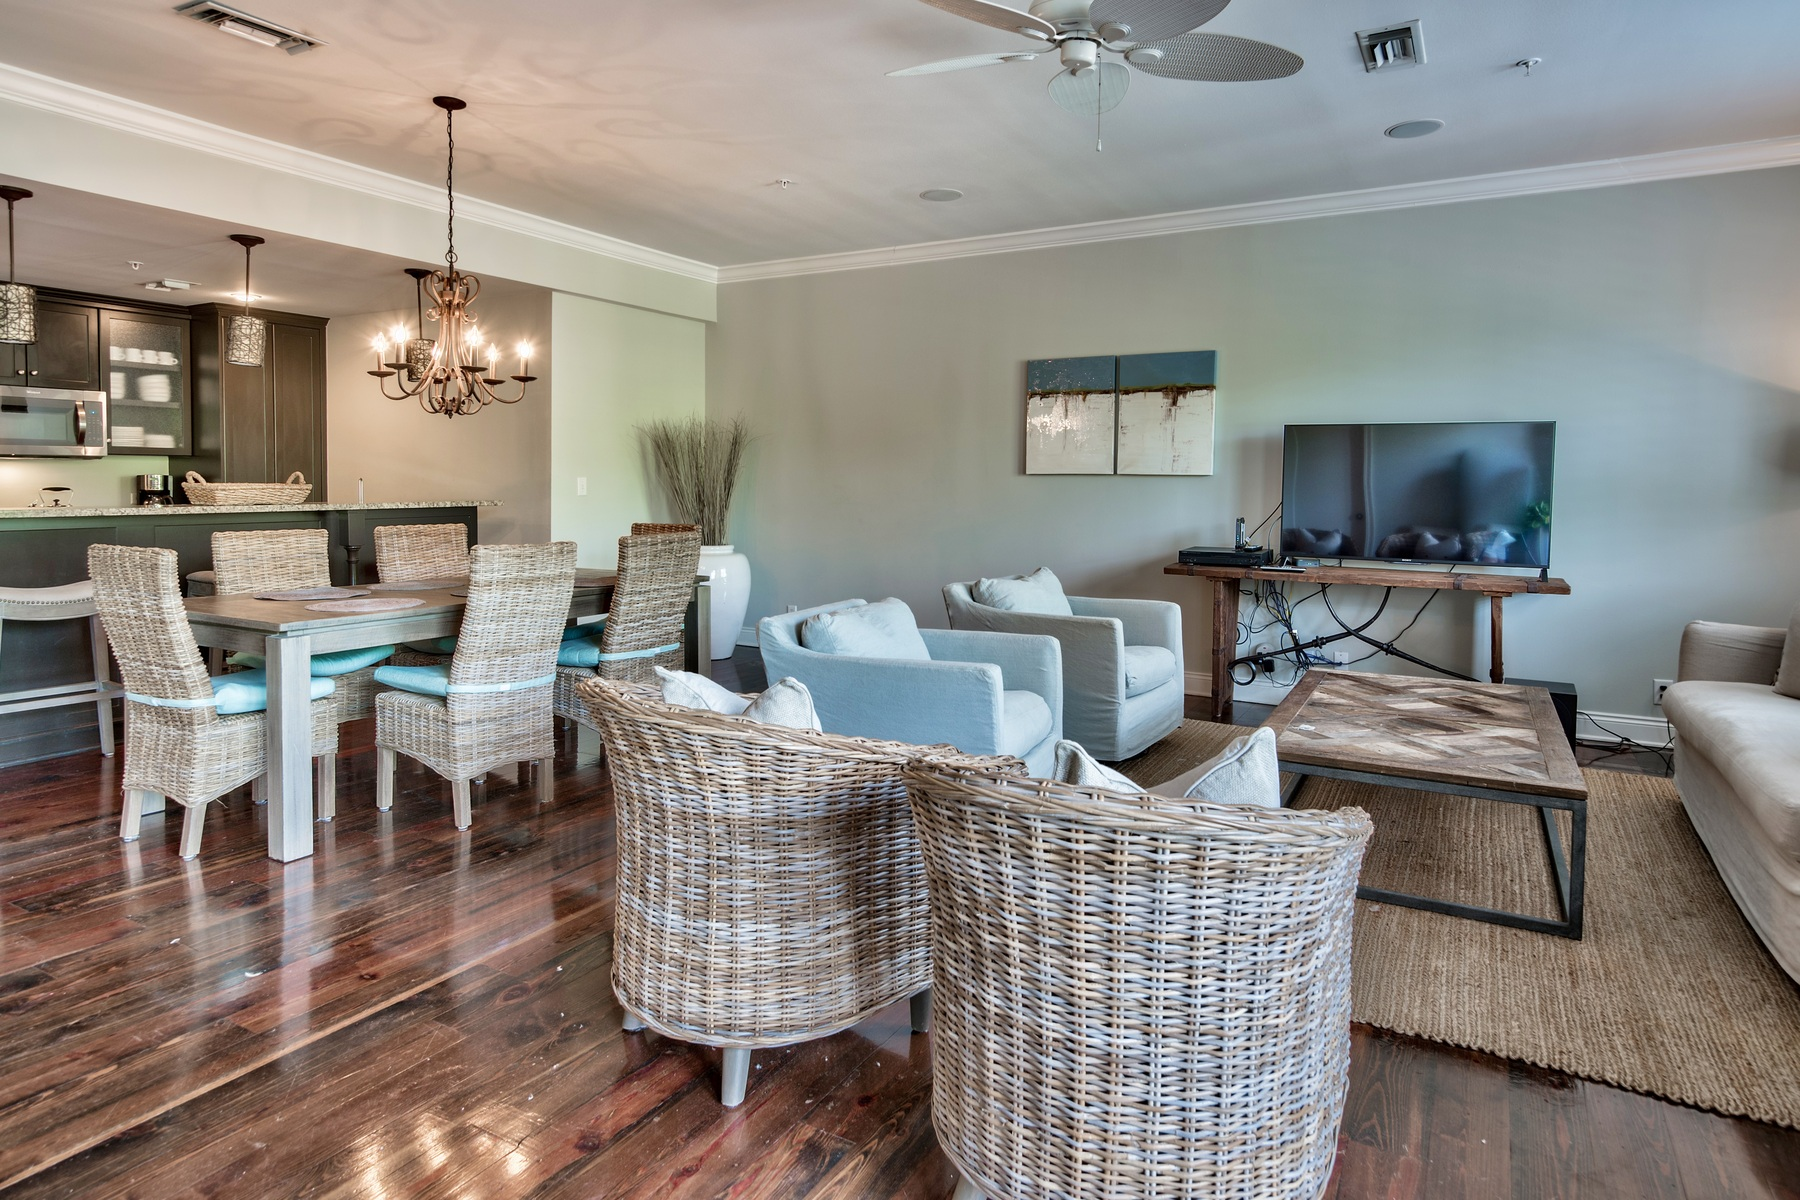 Condominio por un Venta en CHARMING BEACH CONDO WITH MODERN TOUCHES AND NATURAL TEXTURES 34 N Barrett Square 2B Rosemary Beach, Florida, 32461 Estados Unidos